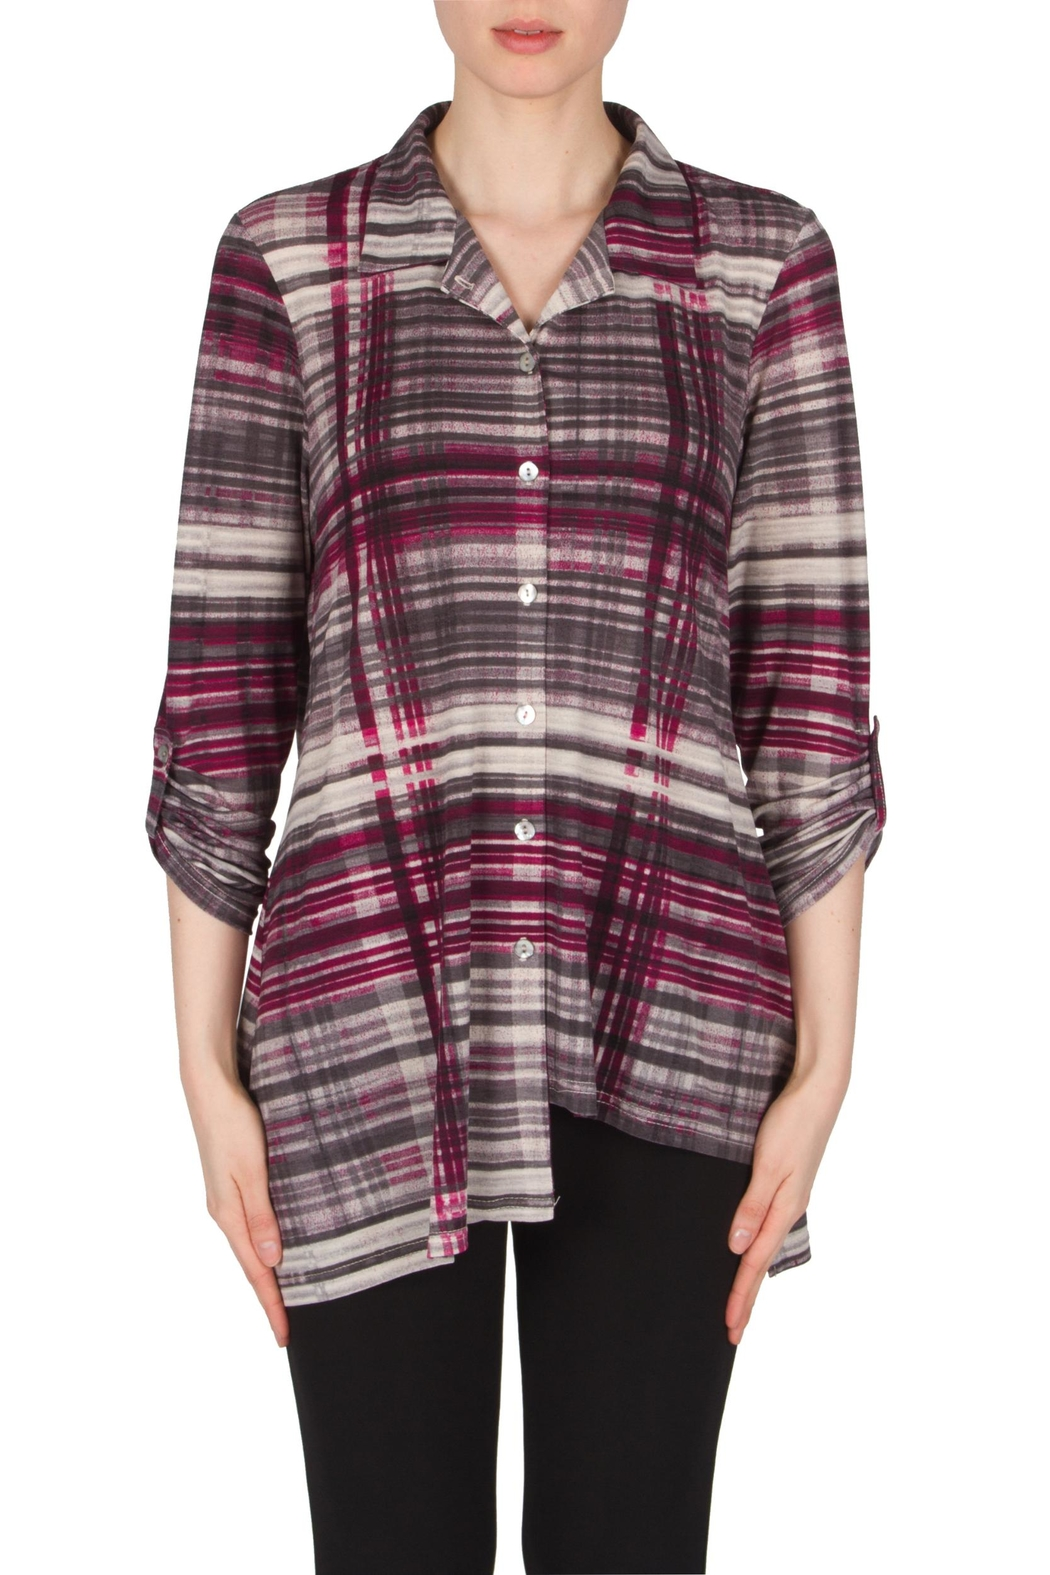 Joseph Ribkoff Asymmetrical Interest Shirt Top - Front Cropped Image